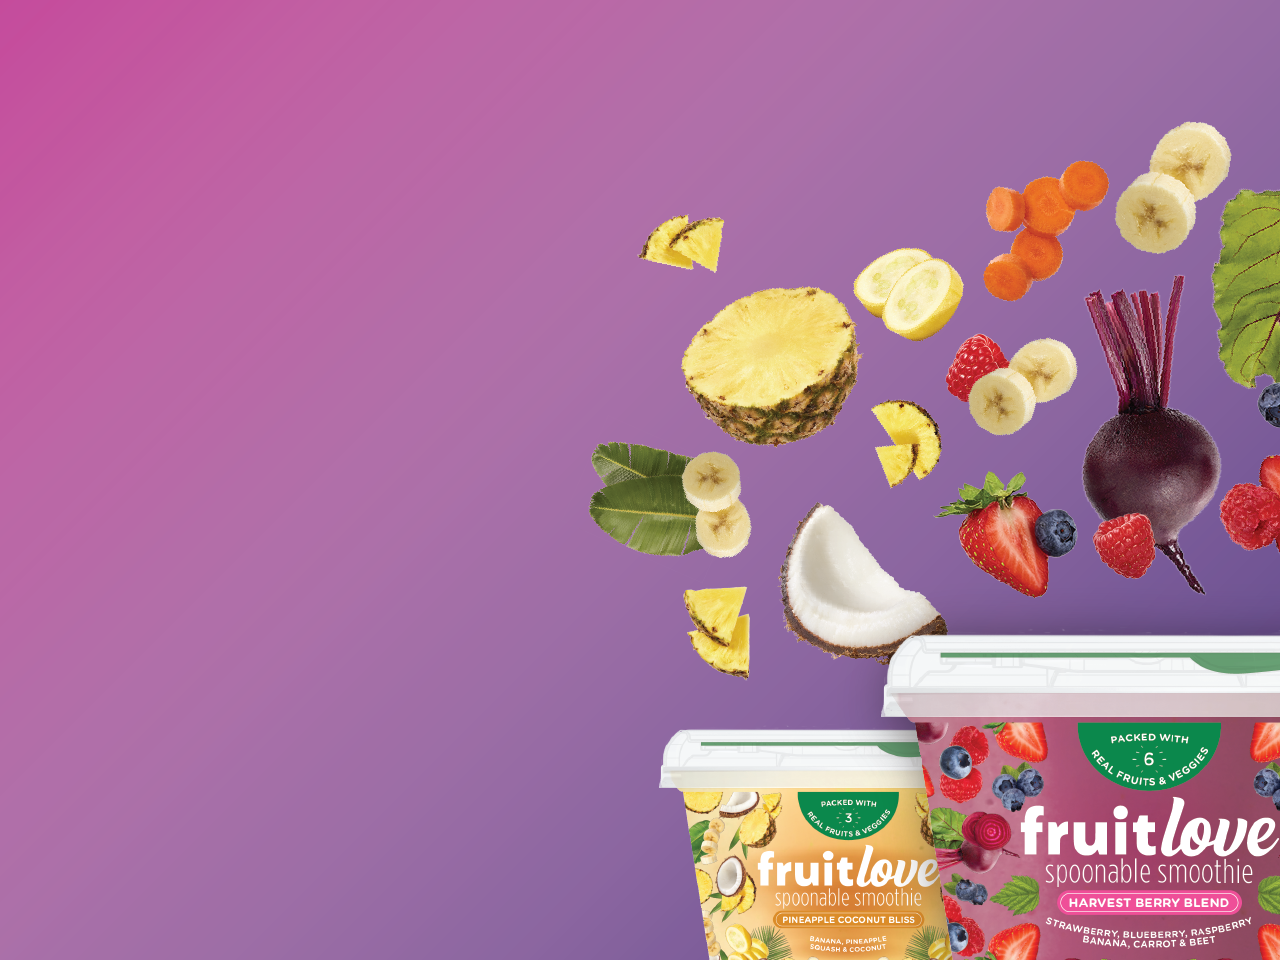 fruitlove mobile banner